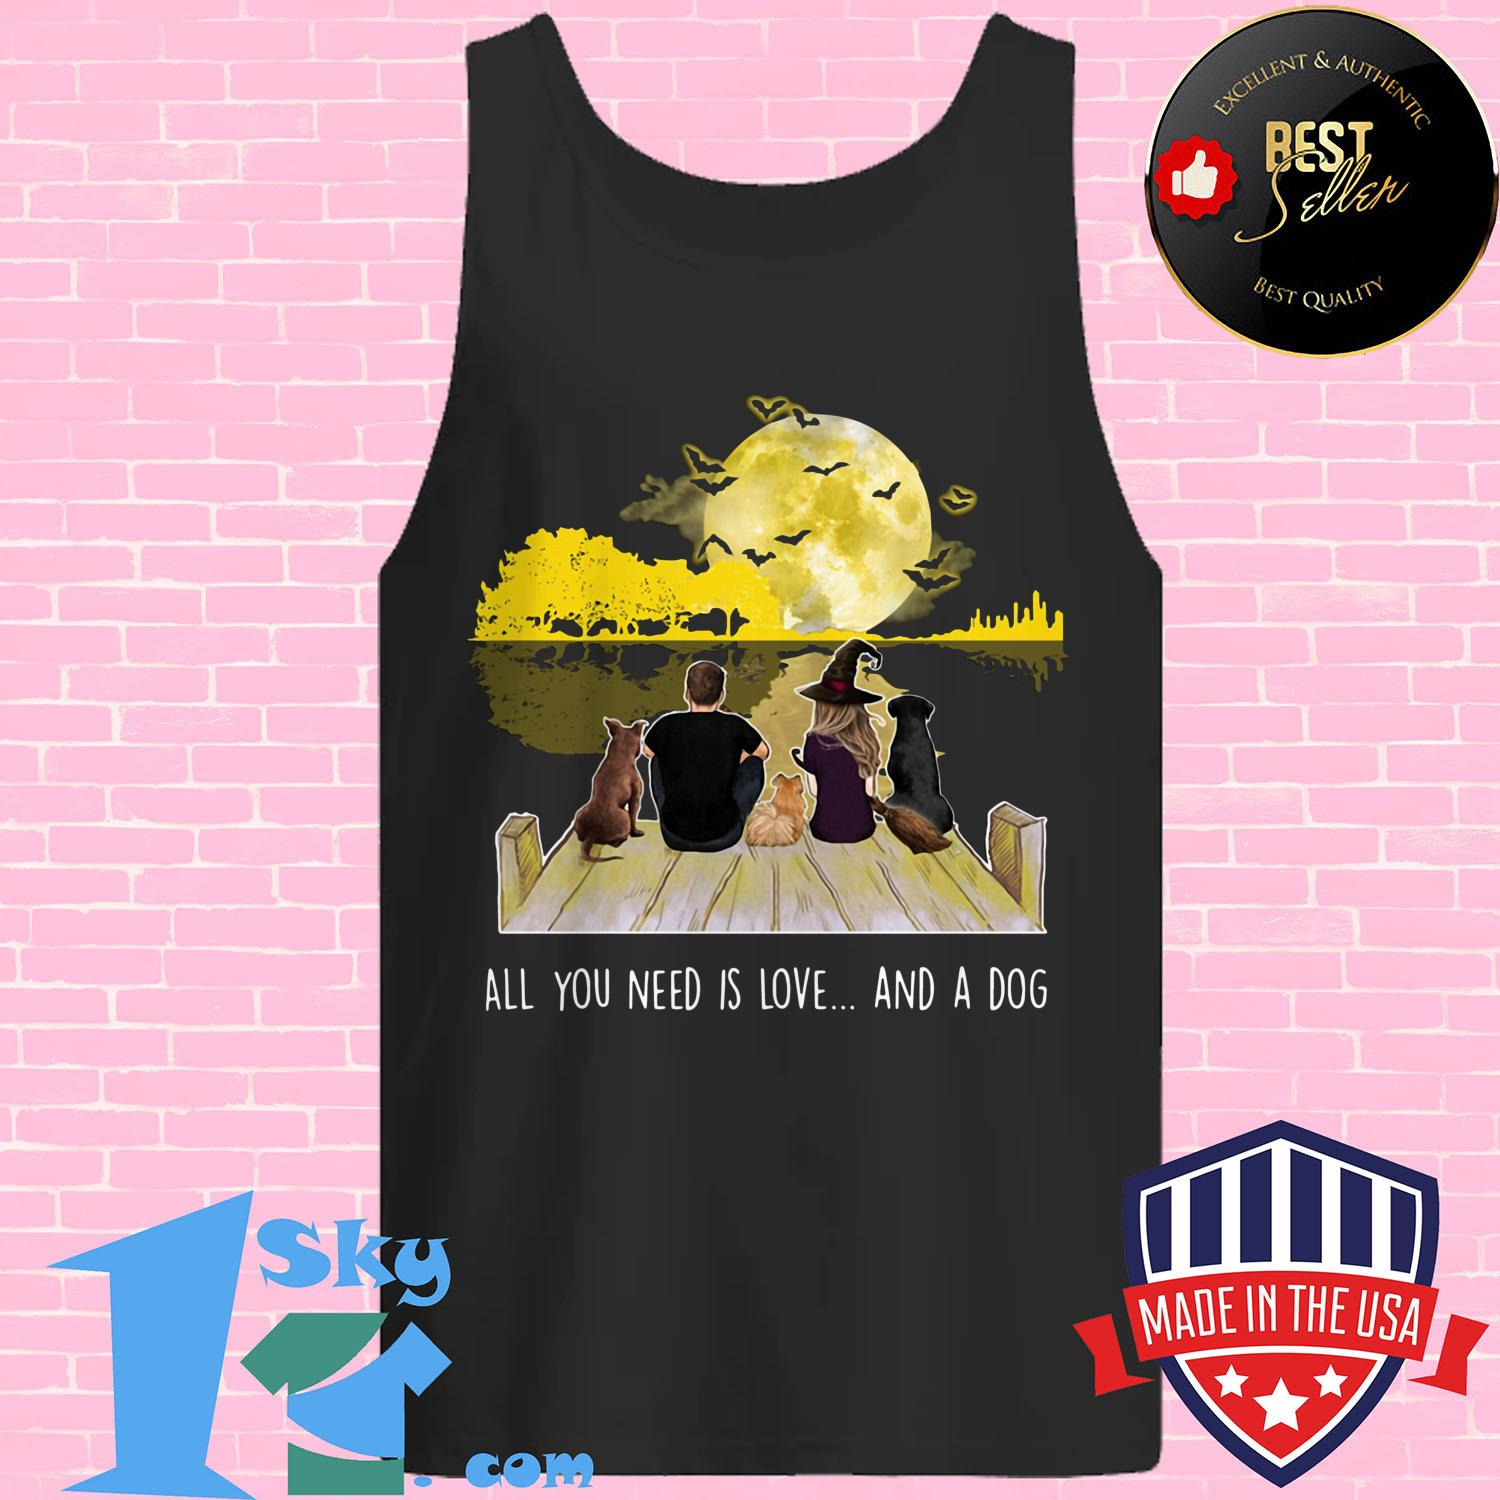 all you need is love and a dog halloween tank top - All You Need is Love and A Dog Halloween shirt